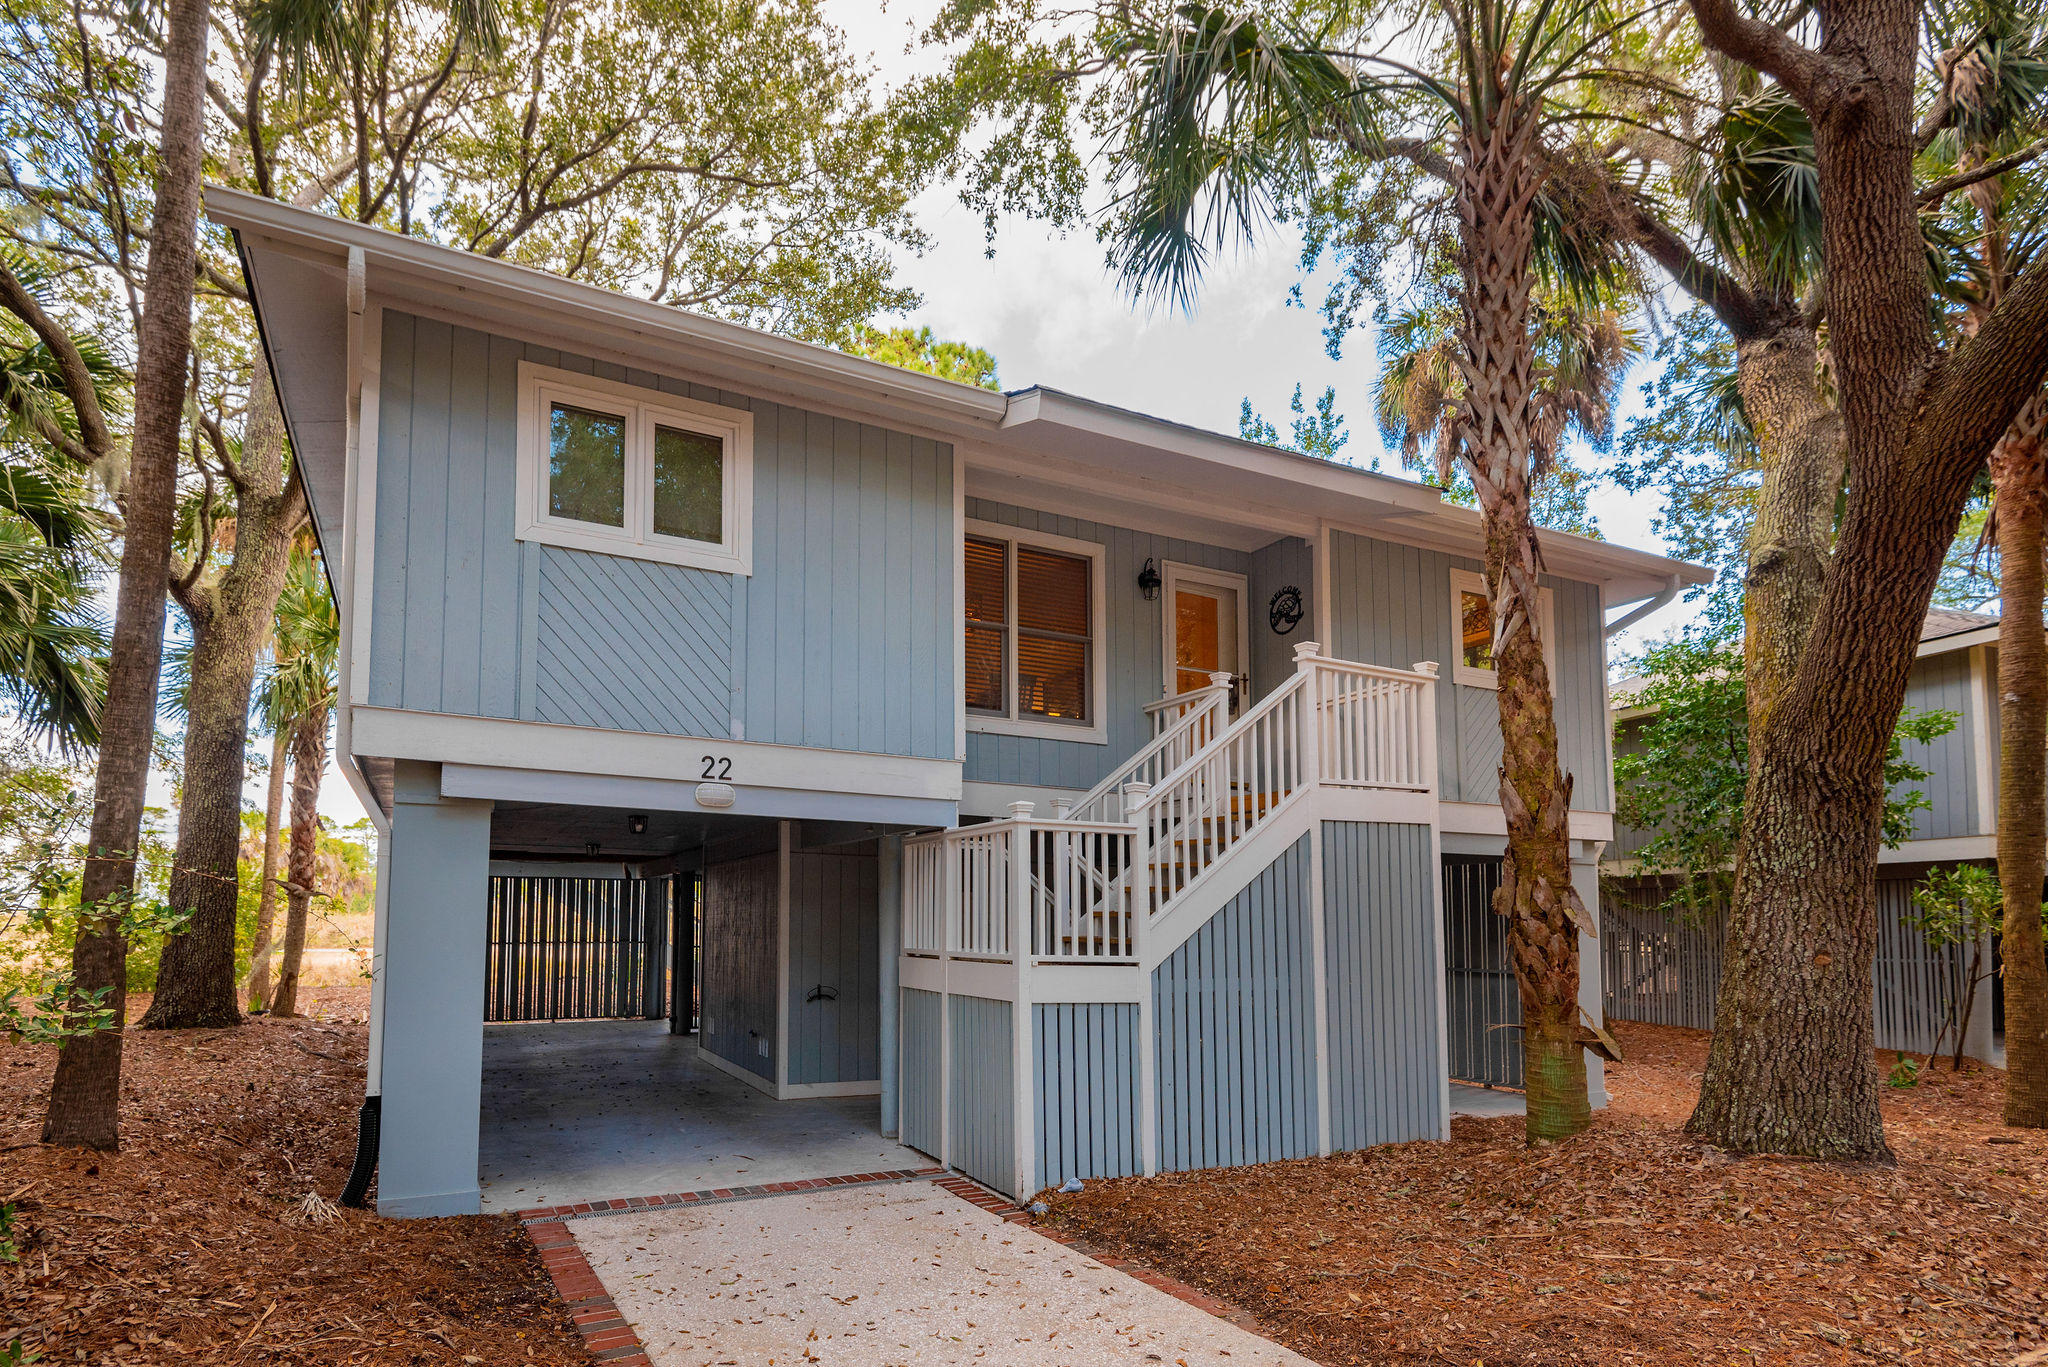 Wild Dunes Homes For Sale - 22 Twin Oaks, Isle of Palms, SC - 21